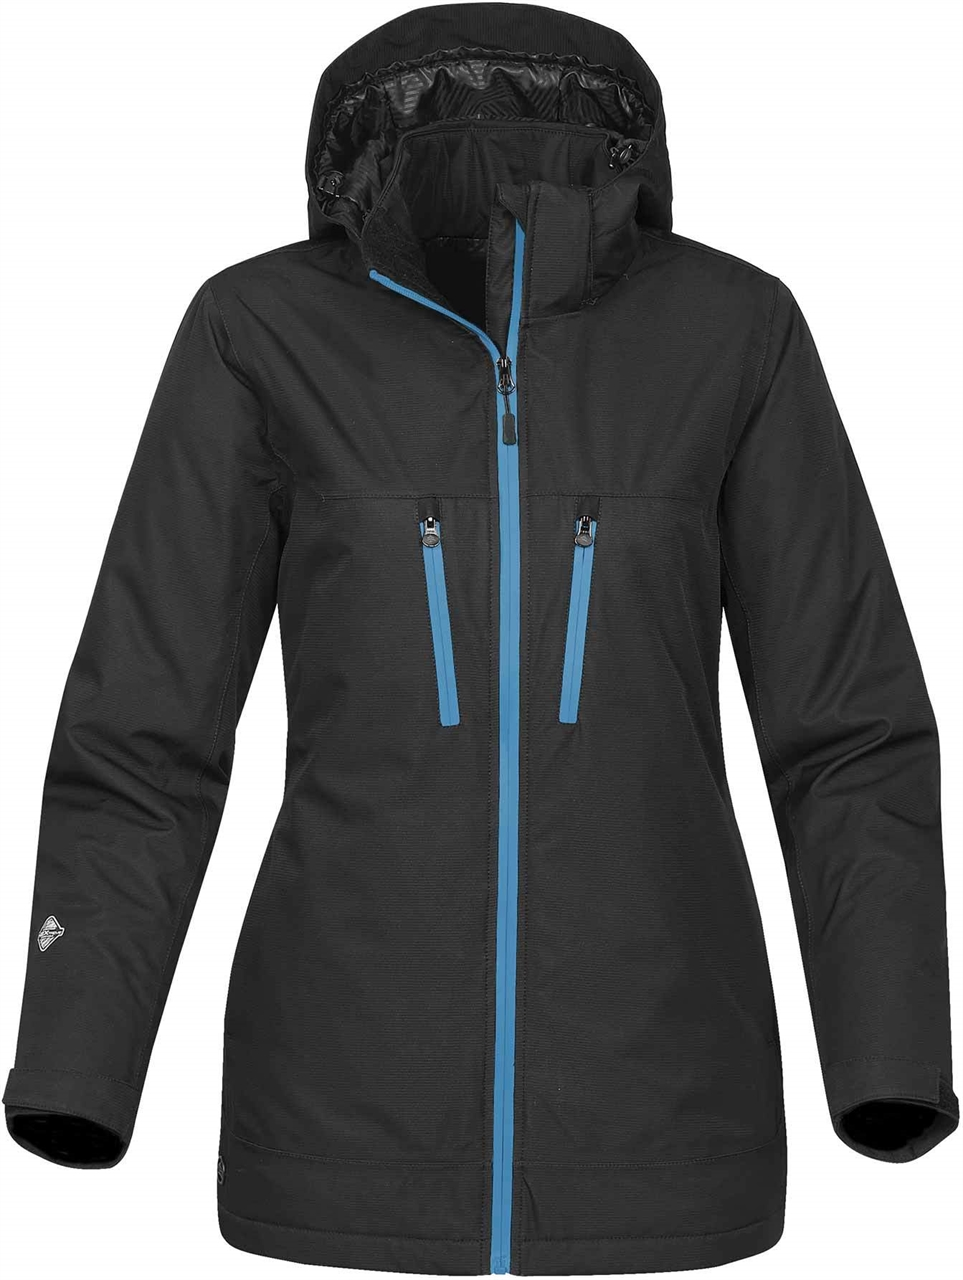 Picture of STORMTECH Snowburst Thermal Ladies Shell